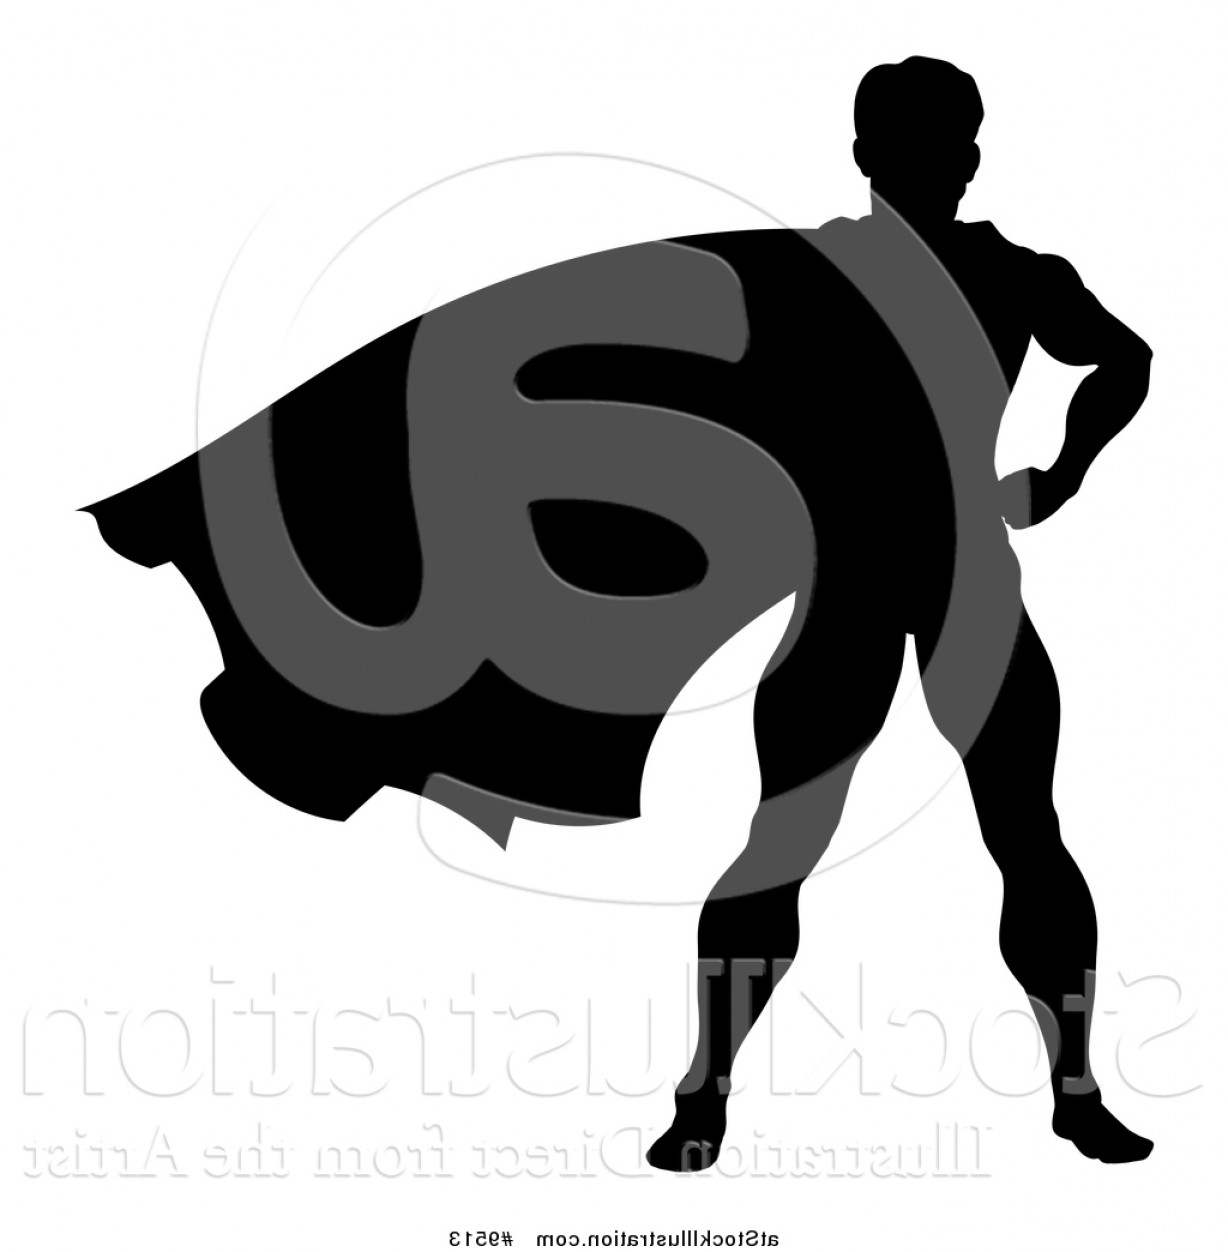 Superman Black And White Vector: Vector Illustration Of A Black Silhouetted Male Super Hero With His Cape Flying By Atstockillustration